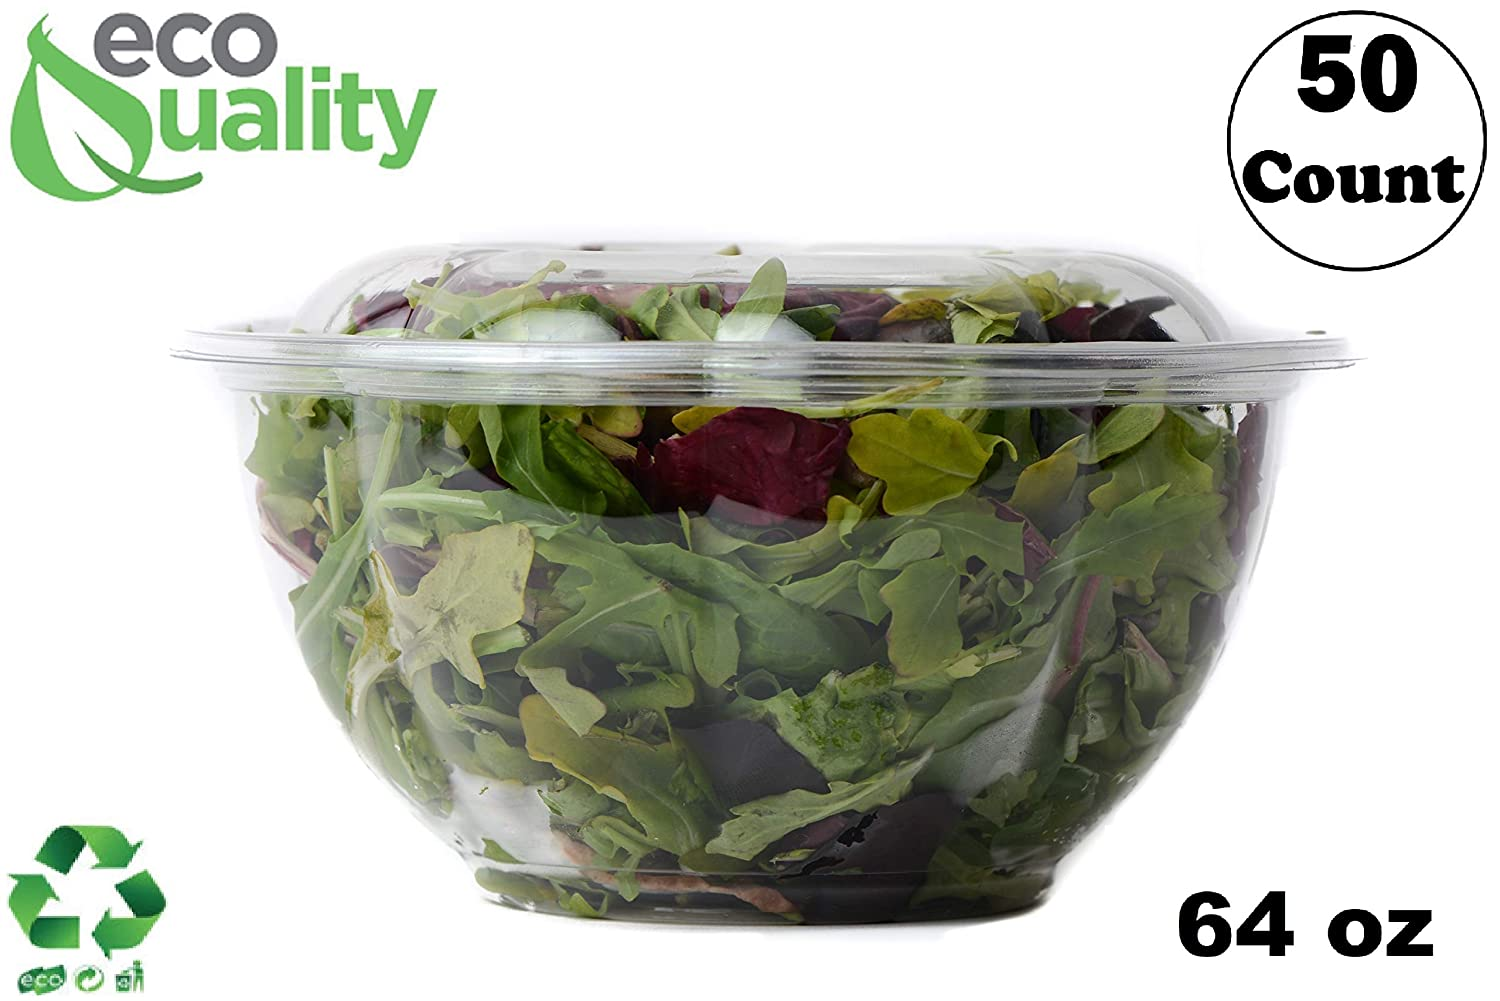 037a3dd53d63 64oz Clear Disposable Salad Bowls with Lids (50 Pack) - Clear Plastic  Disposable Salad Containers for Lunch To-Go, Salads, Fruits, Airtight, Leak  ...